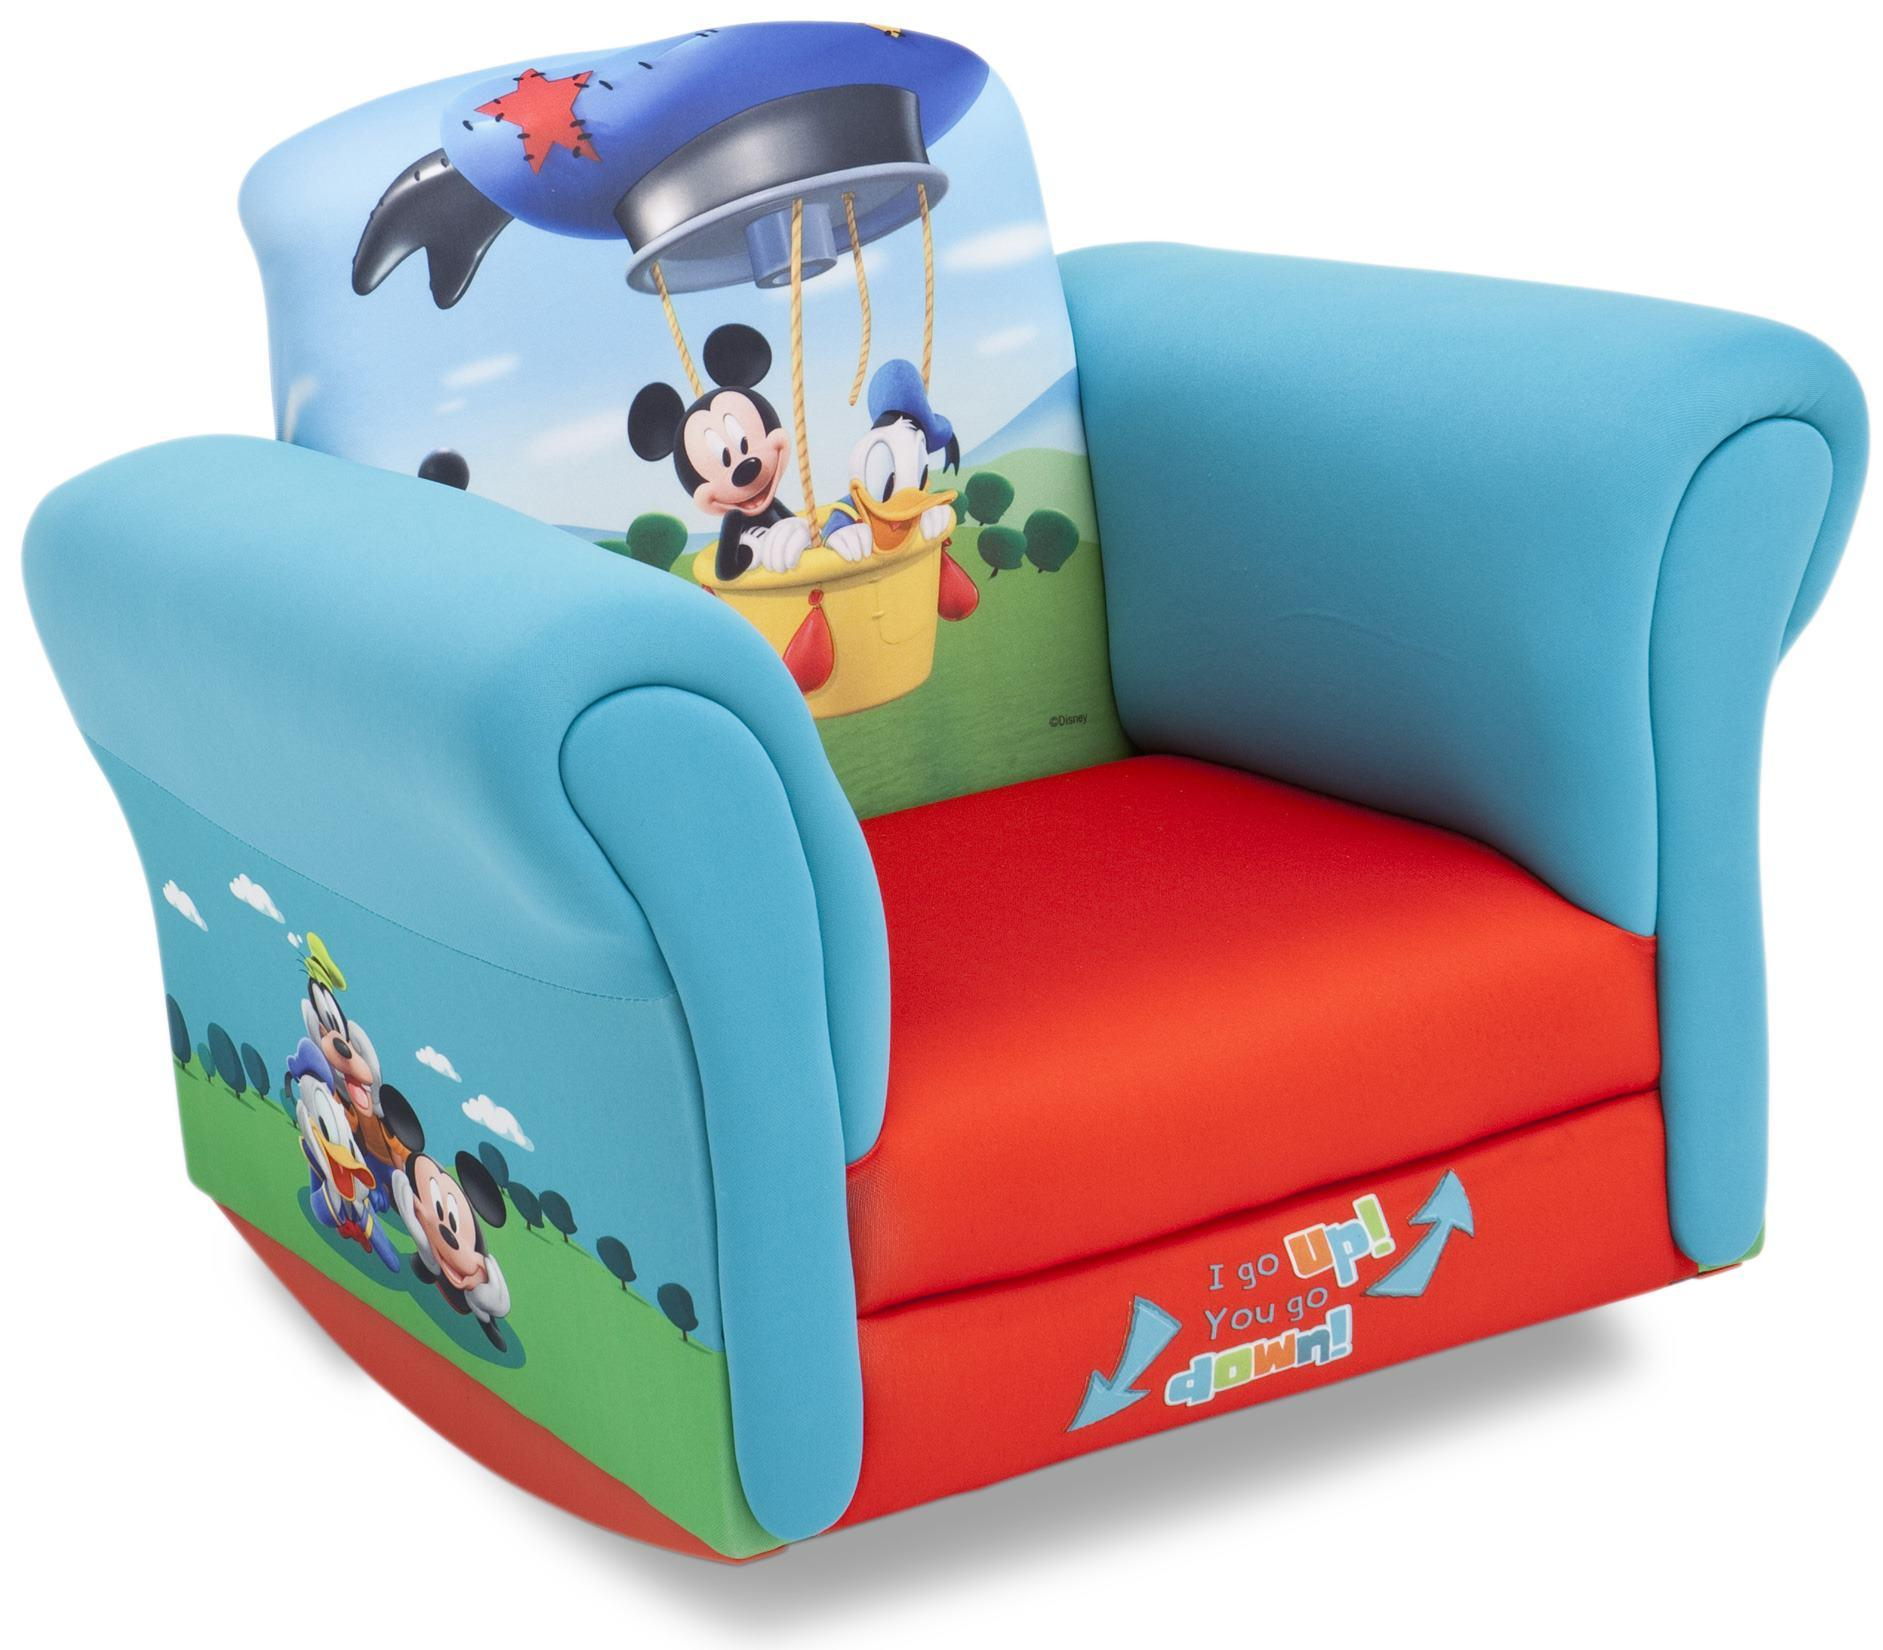 Toddler Soft Chair Disney Upholstered Child 39s Mickey Mouse Rocking Chair